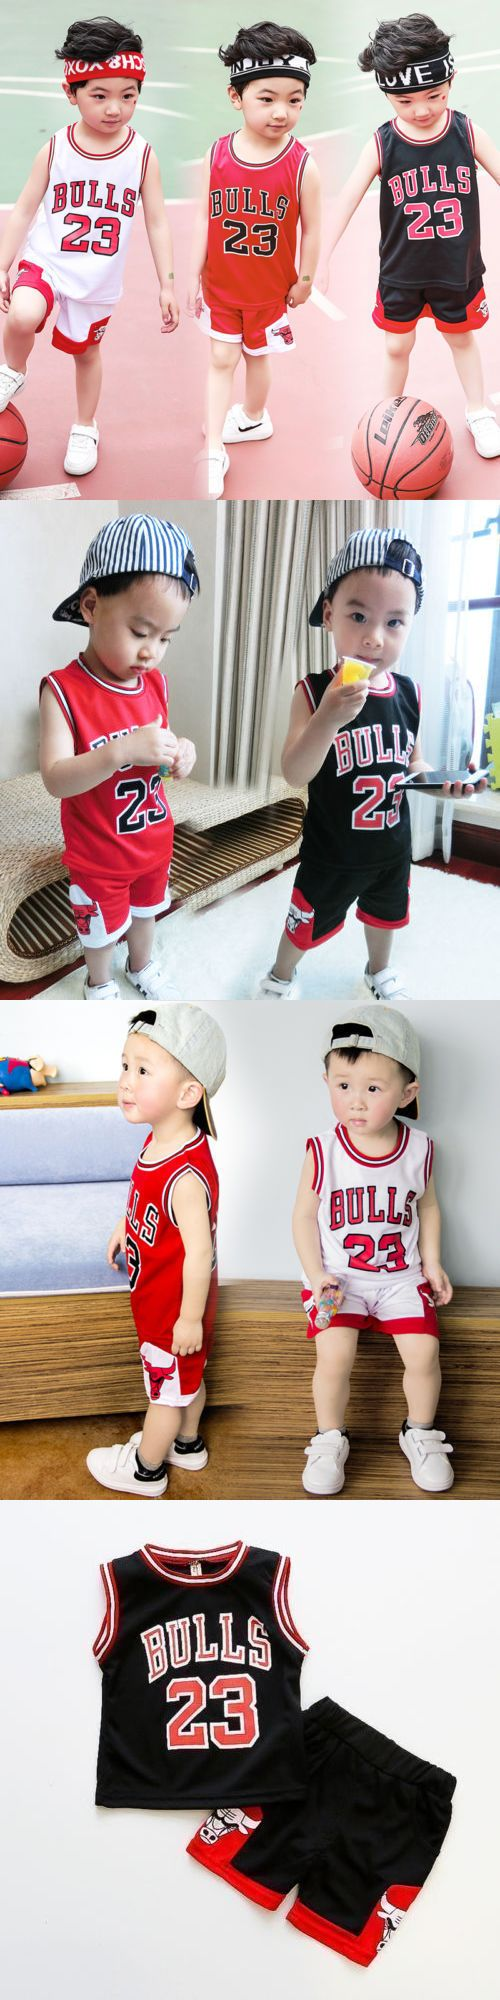 3ac3cfc8c7ff87 Outfits and Sets 163427  Hot Kids Baby Boys Girls  23 Michael Jordan Bulls  Basketball Jerseys Short Suits -  BUY IT NOW ONLY   12.5 on  eBay  outfits   girls ...